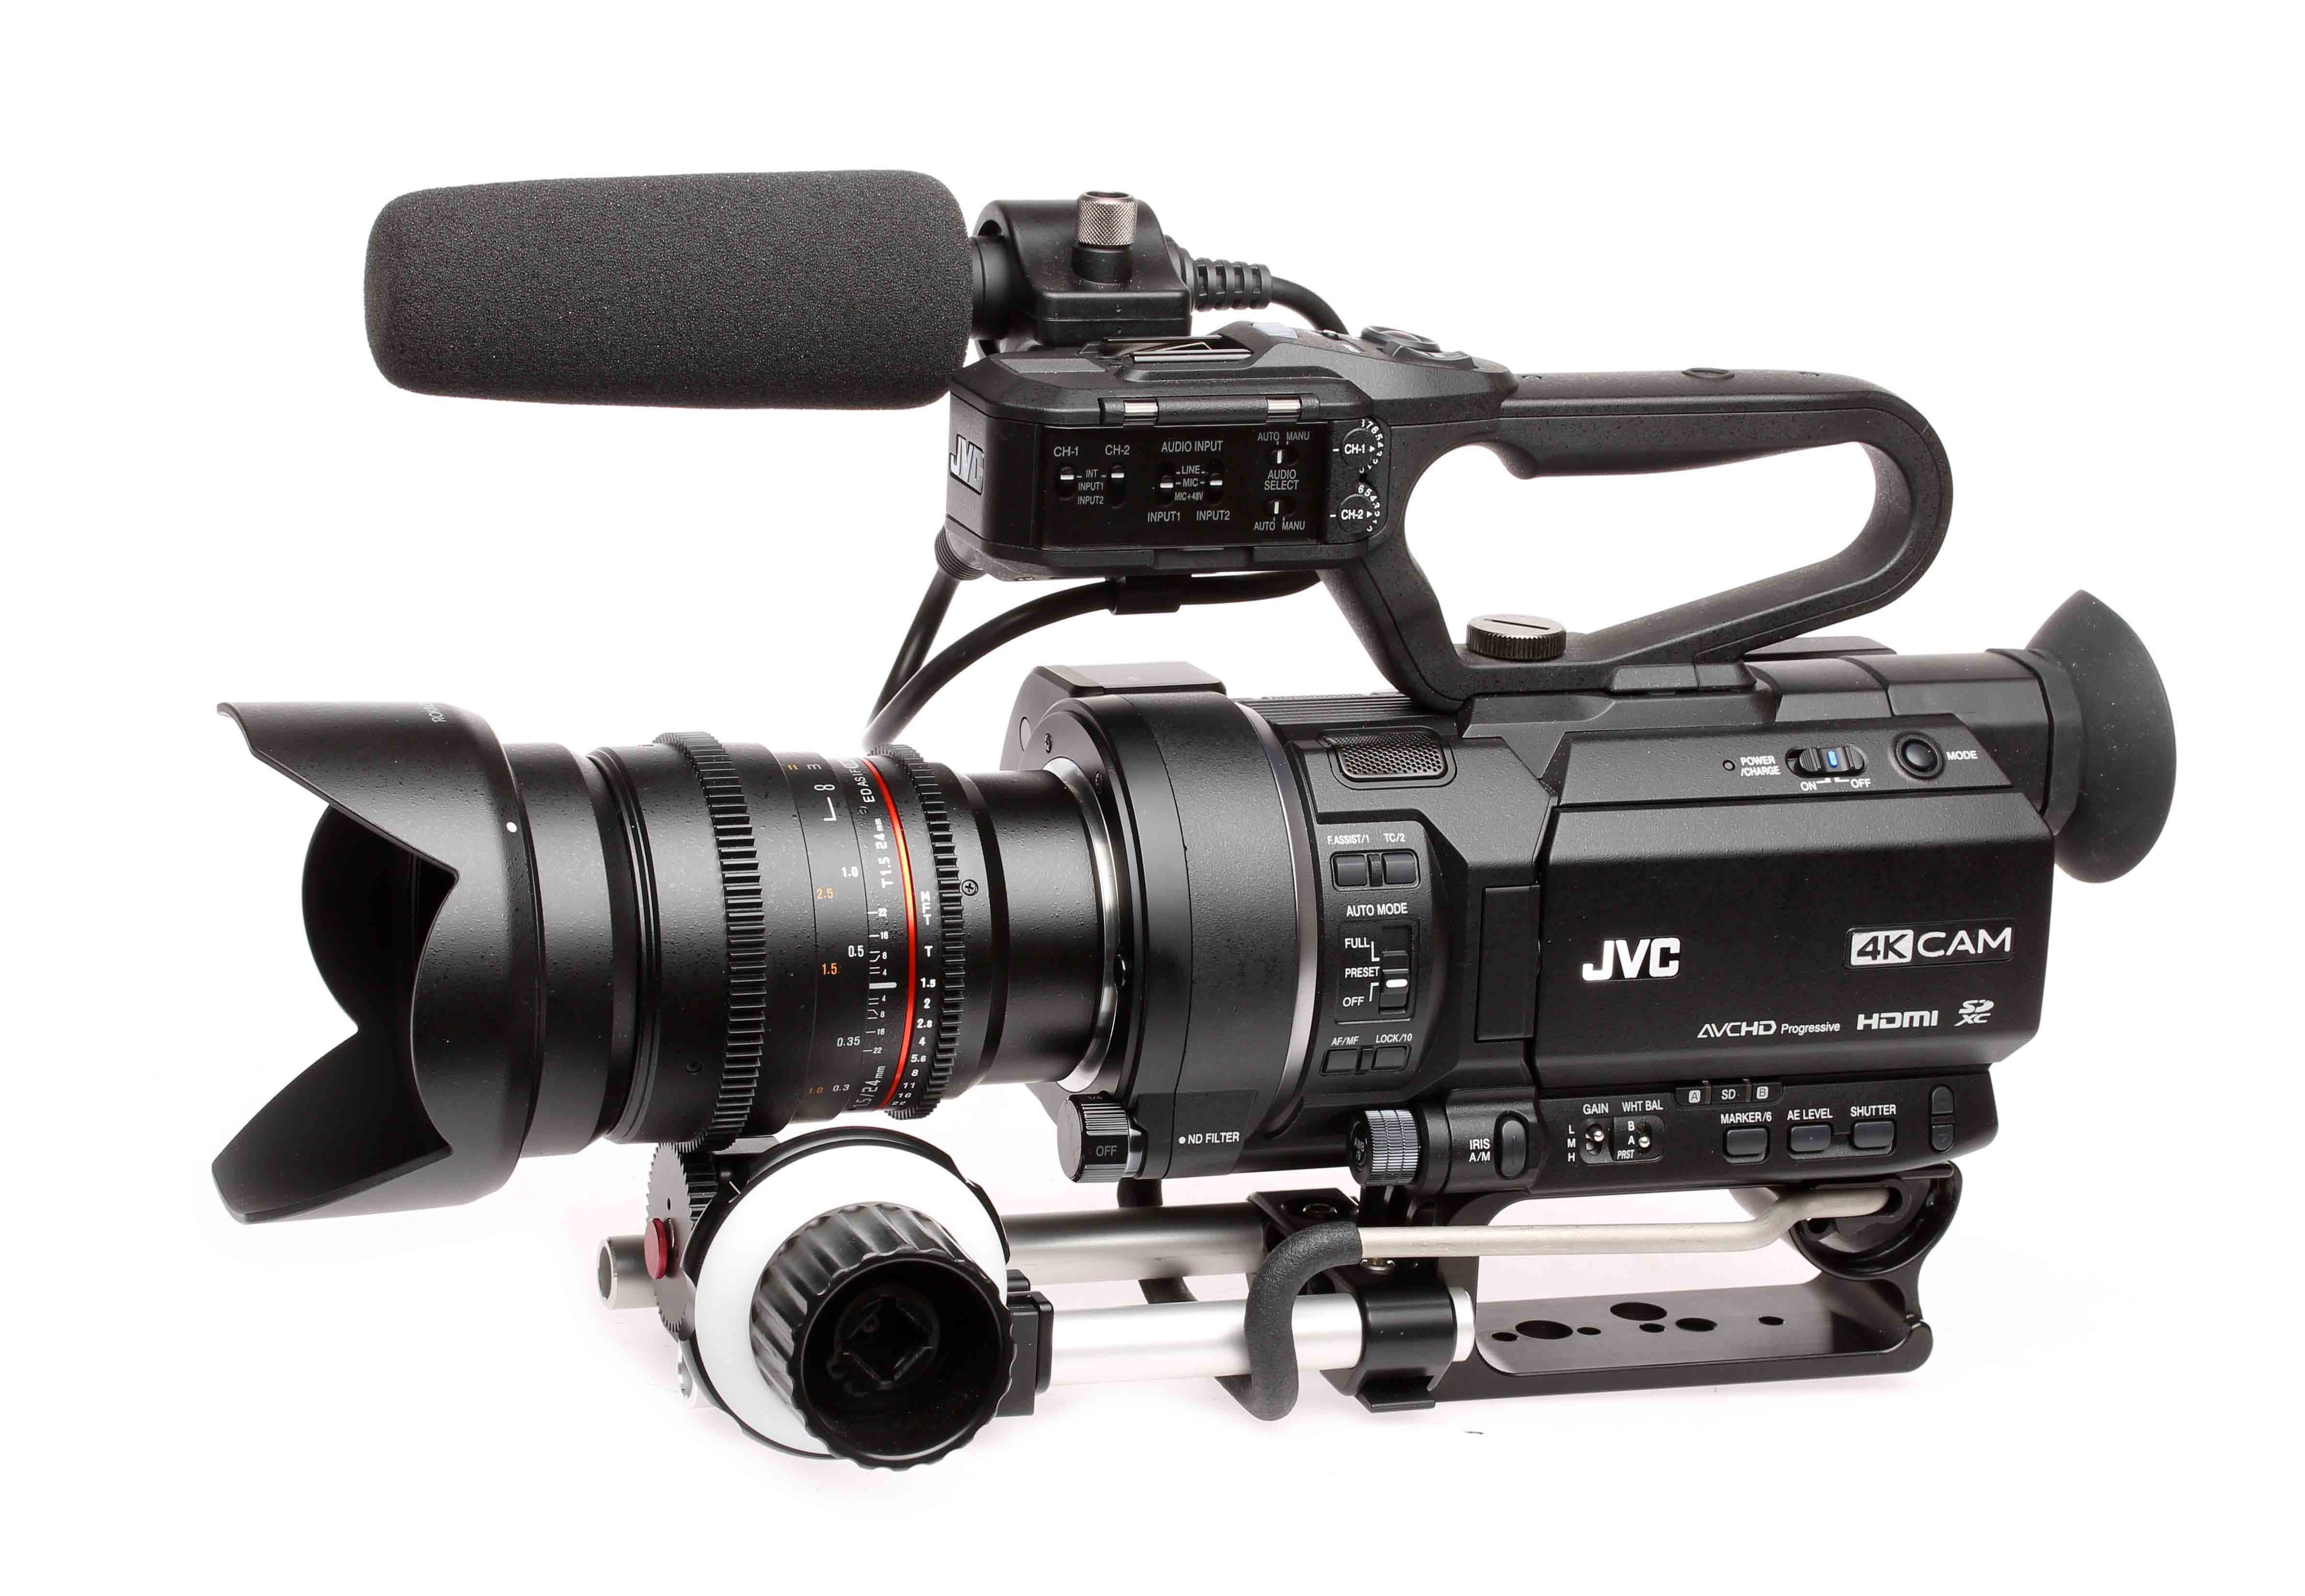 latest firmware for jvc gy-hm200 4kcam